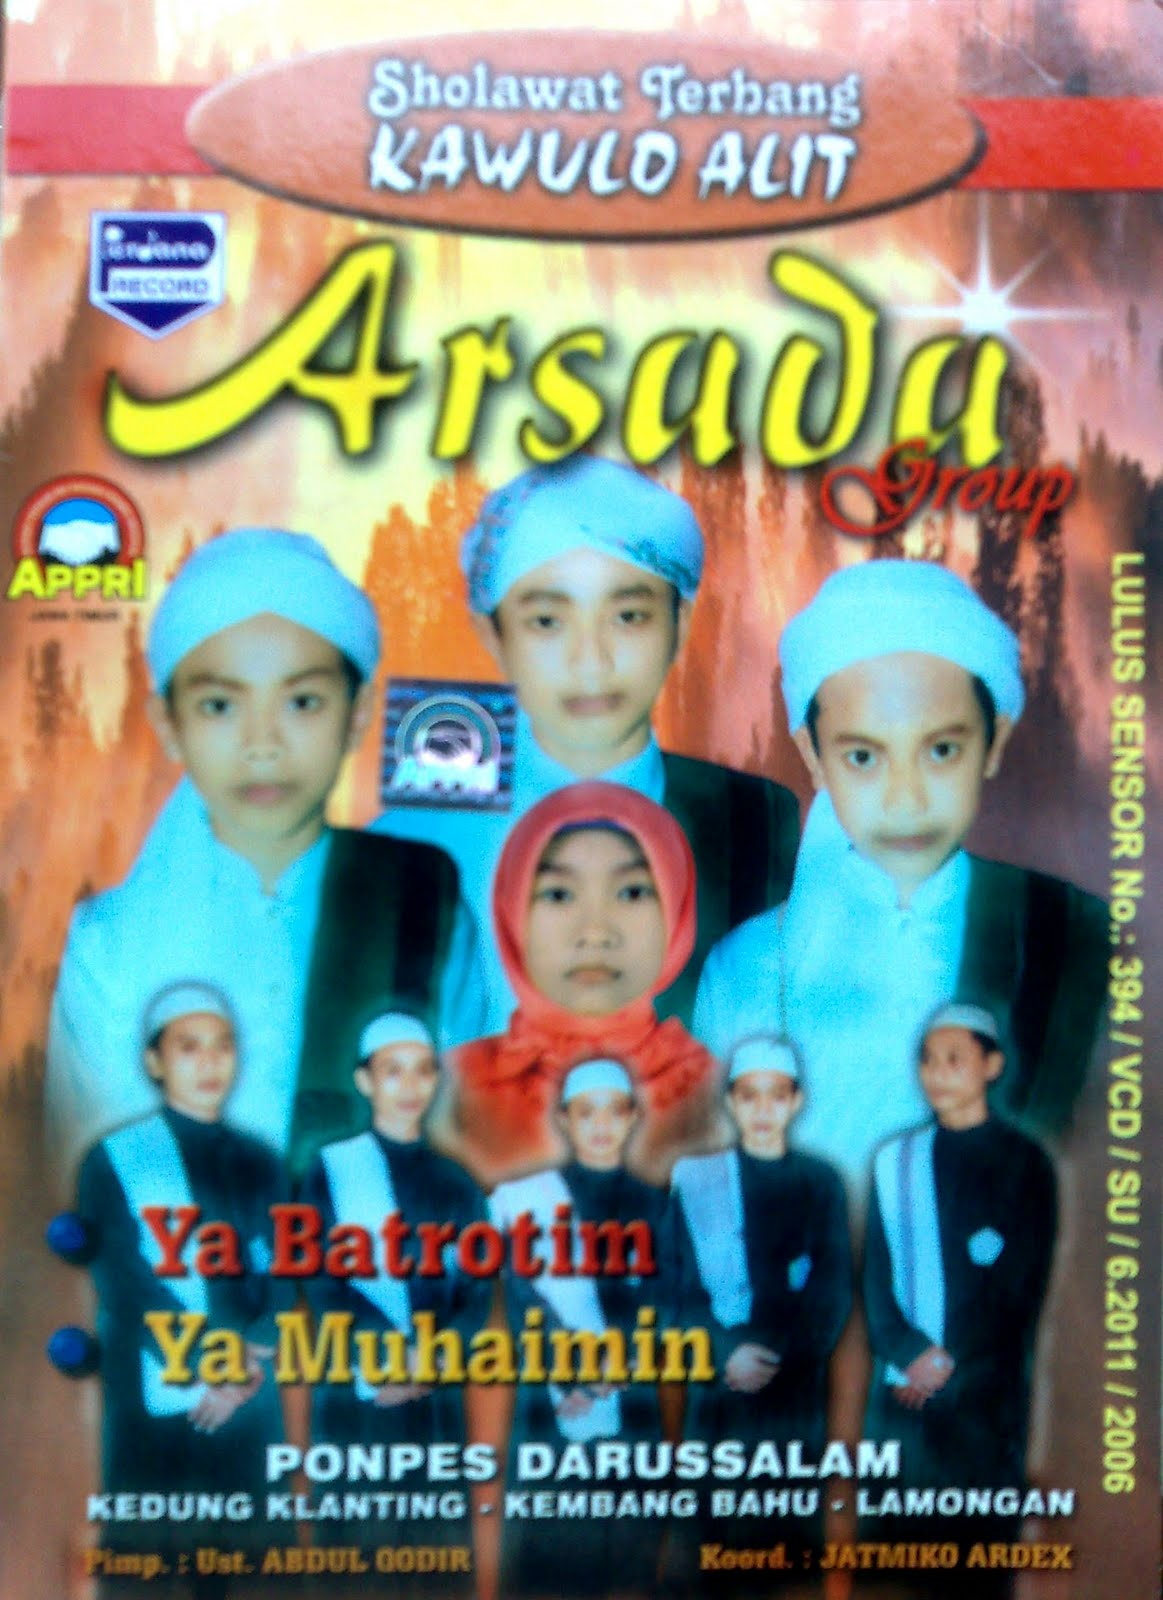 Album Ya Badrotim (Perdana) - Arsada Group